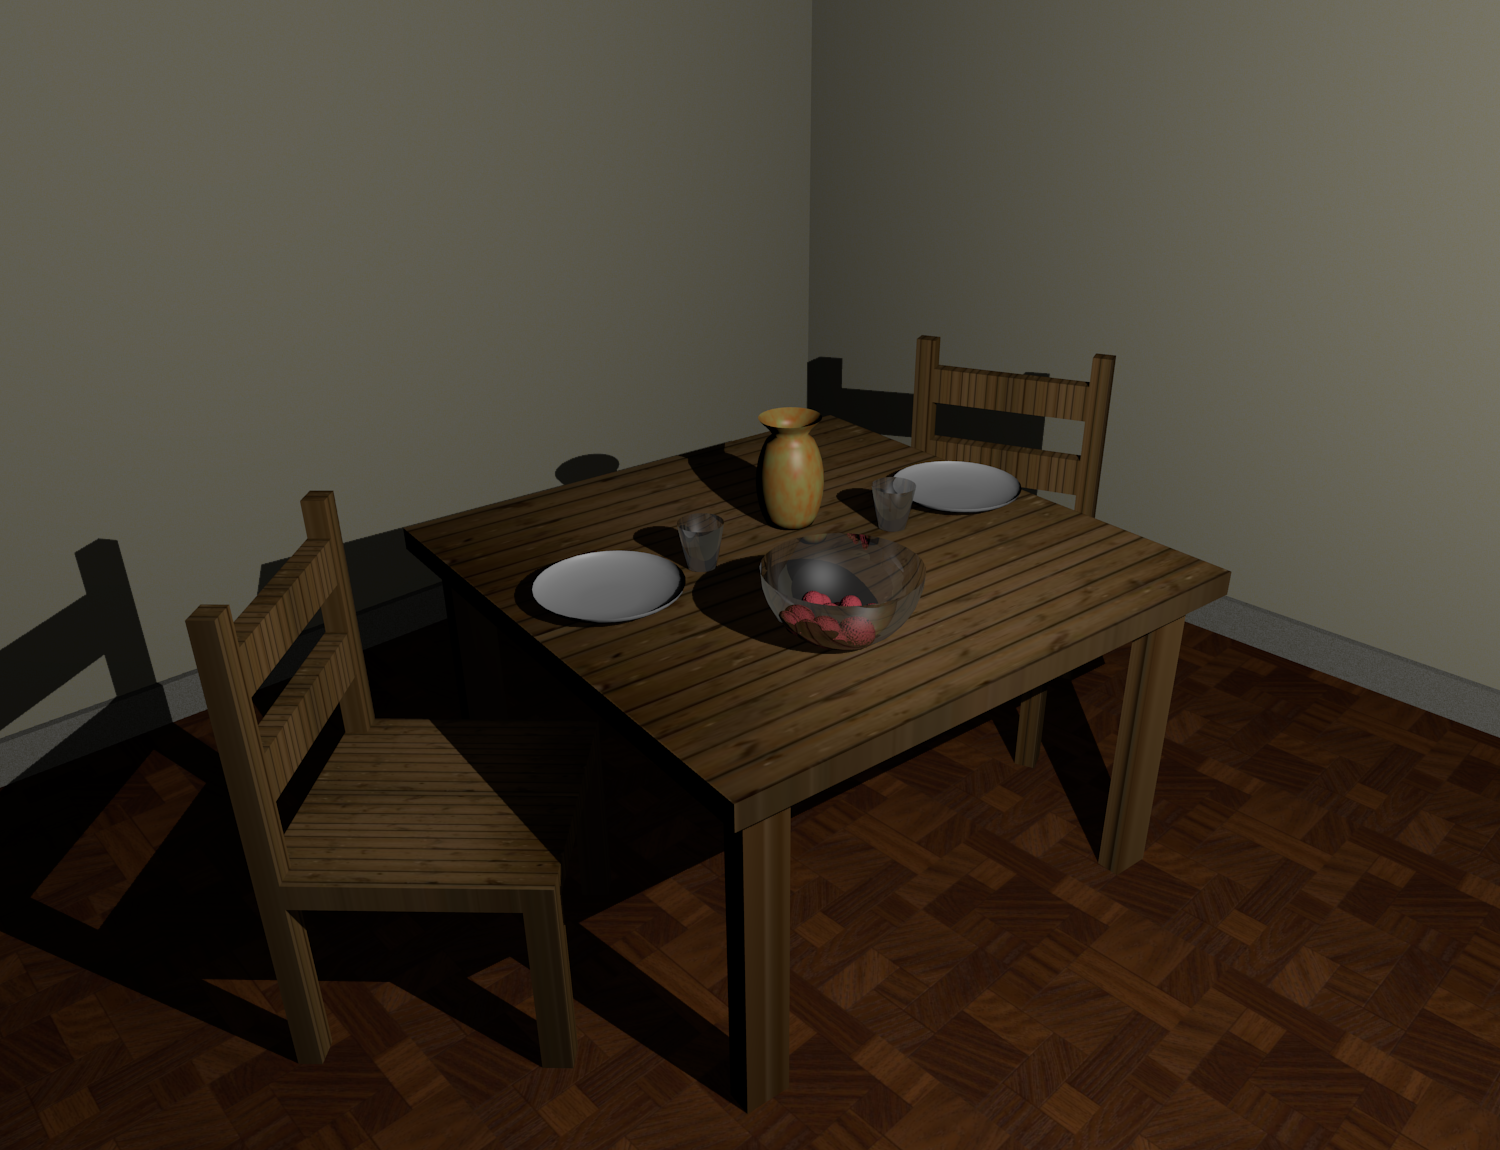 Table 3D image